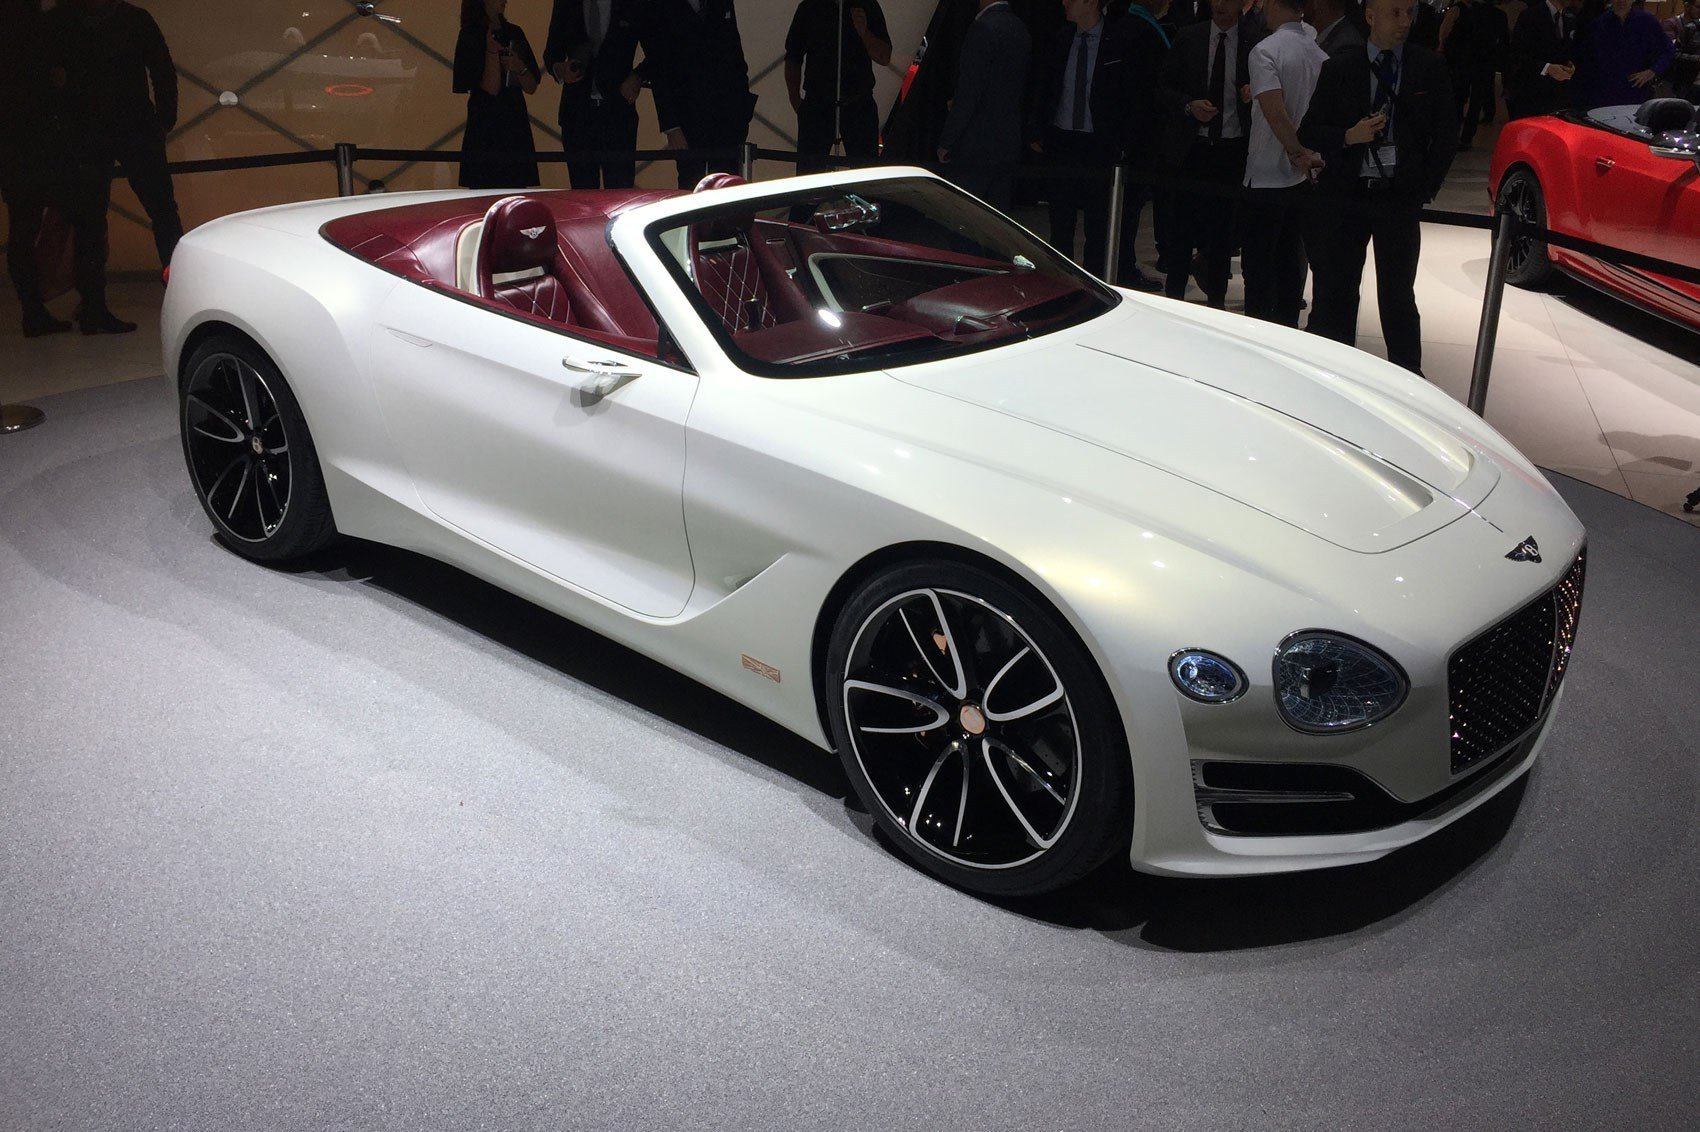 Latest All Electric Bentley Exp 12 Speed 6E Convertible At Geneva Free Download